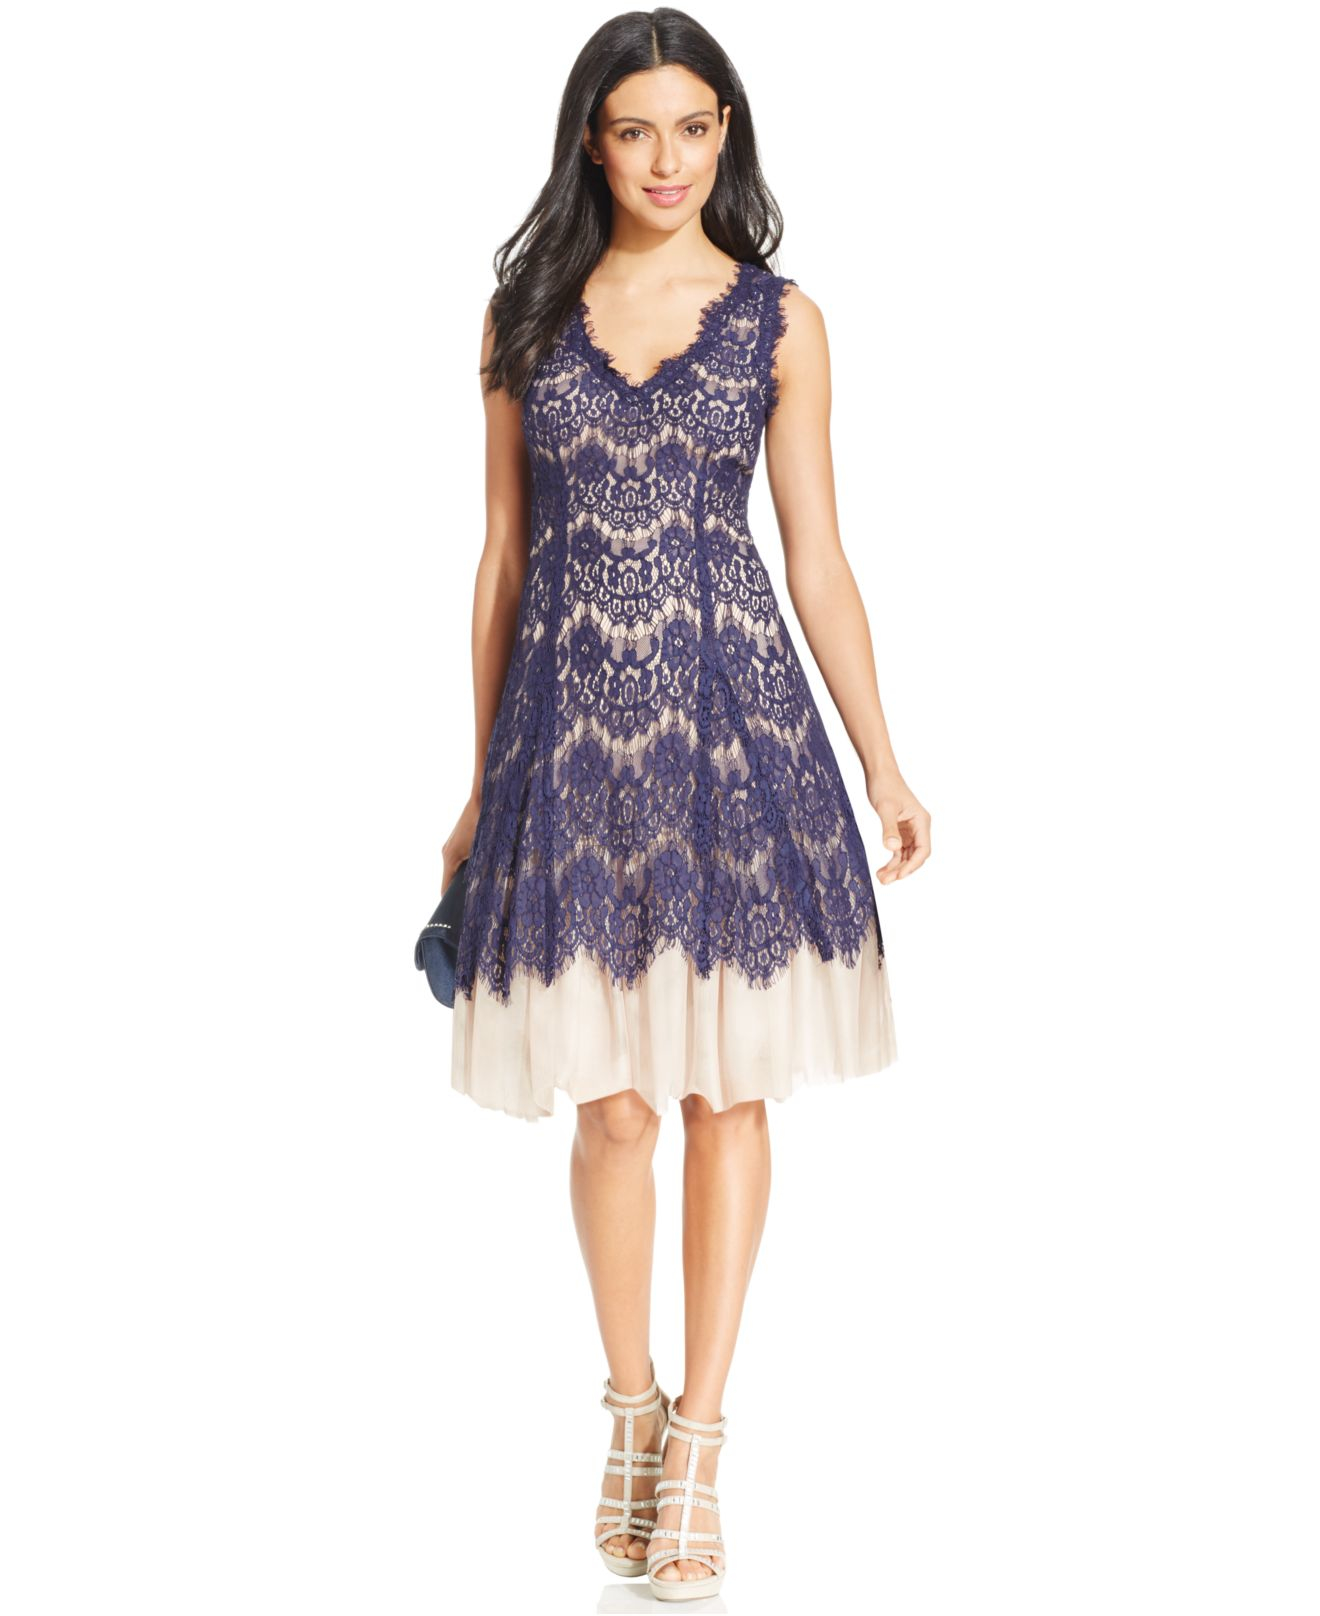 Dresses with lace overlay